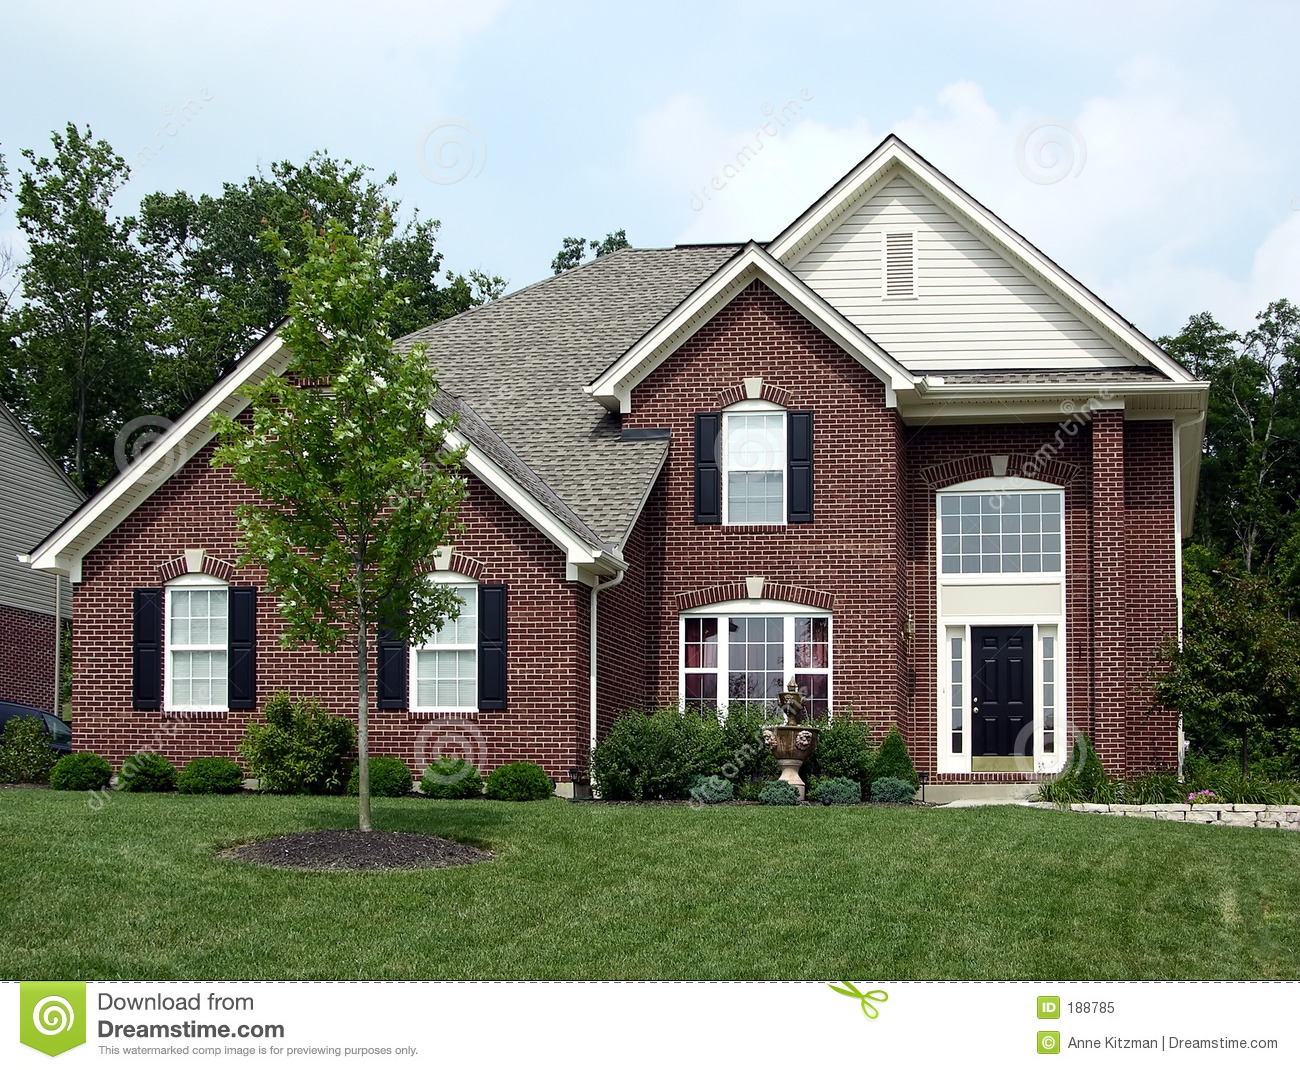 House stock image image of story home countryside for 2 story house with garage